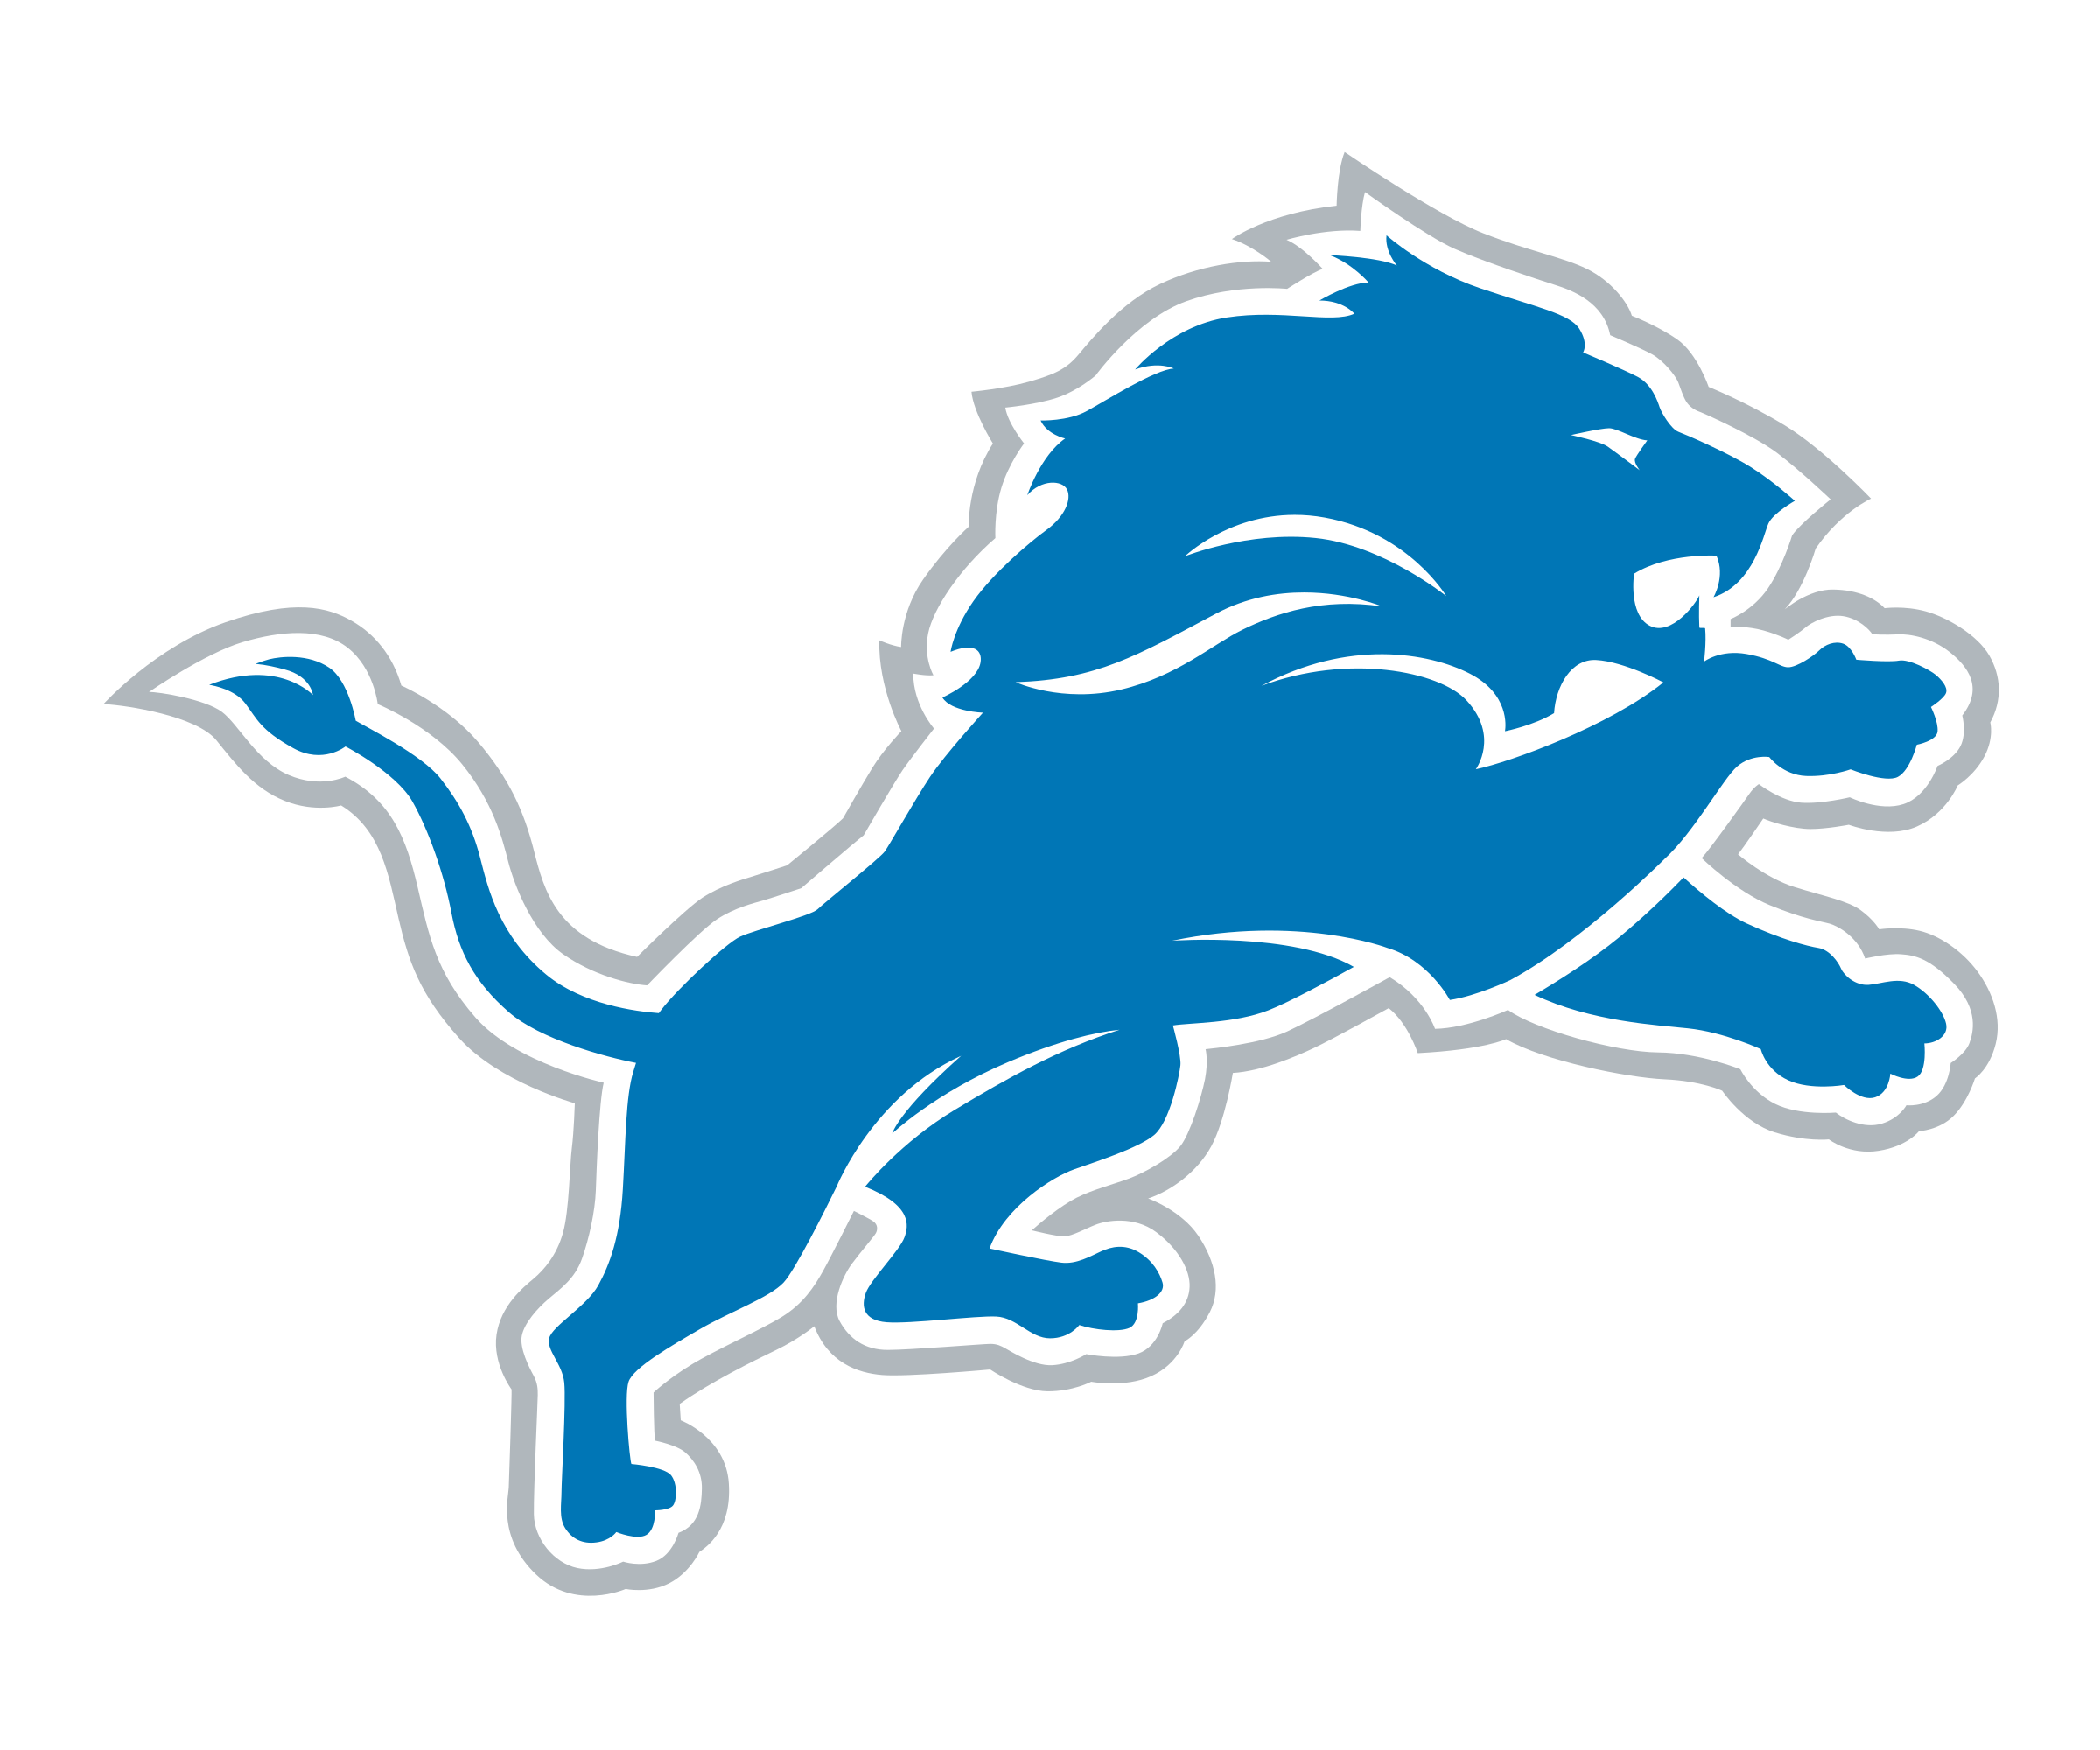 Detroit Lions Logo Png Transparent Svg Vector Freebie Supply Icons are in line, flat, solid, colored outline, and other styles. detroit lions logo png transparent